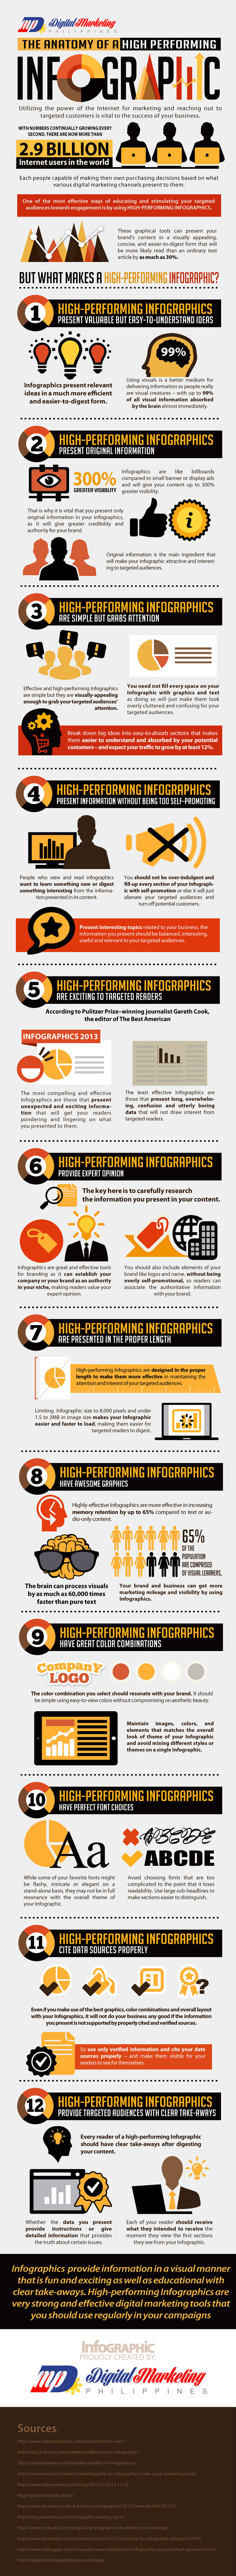 The Anatomy of a High-performing Infographic